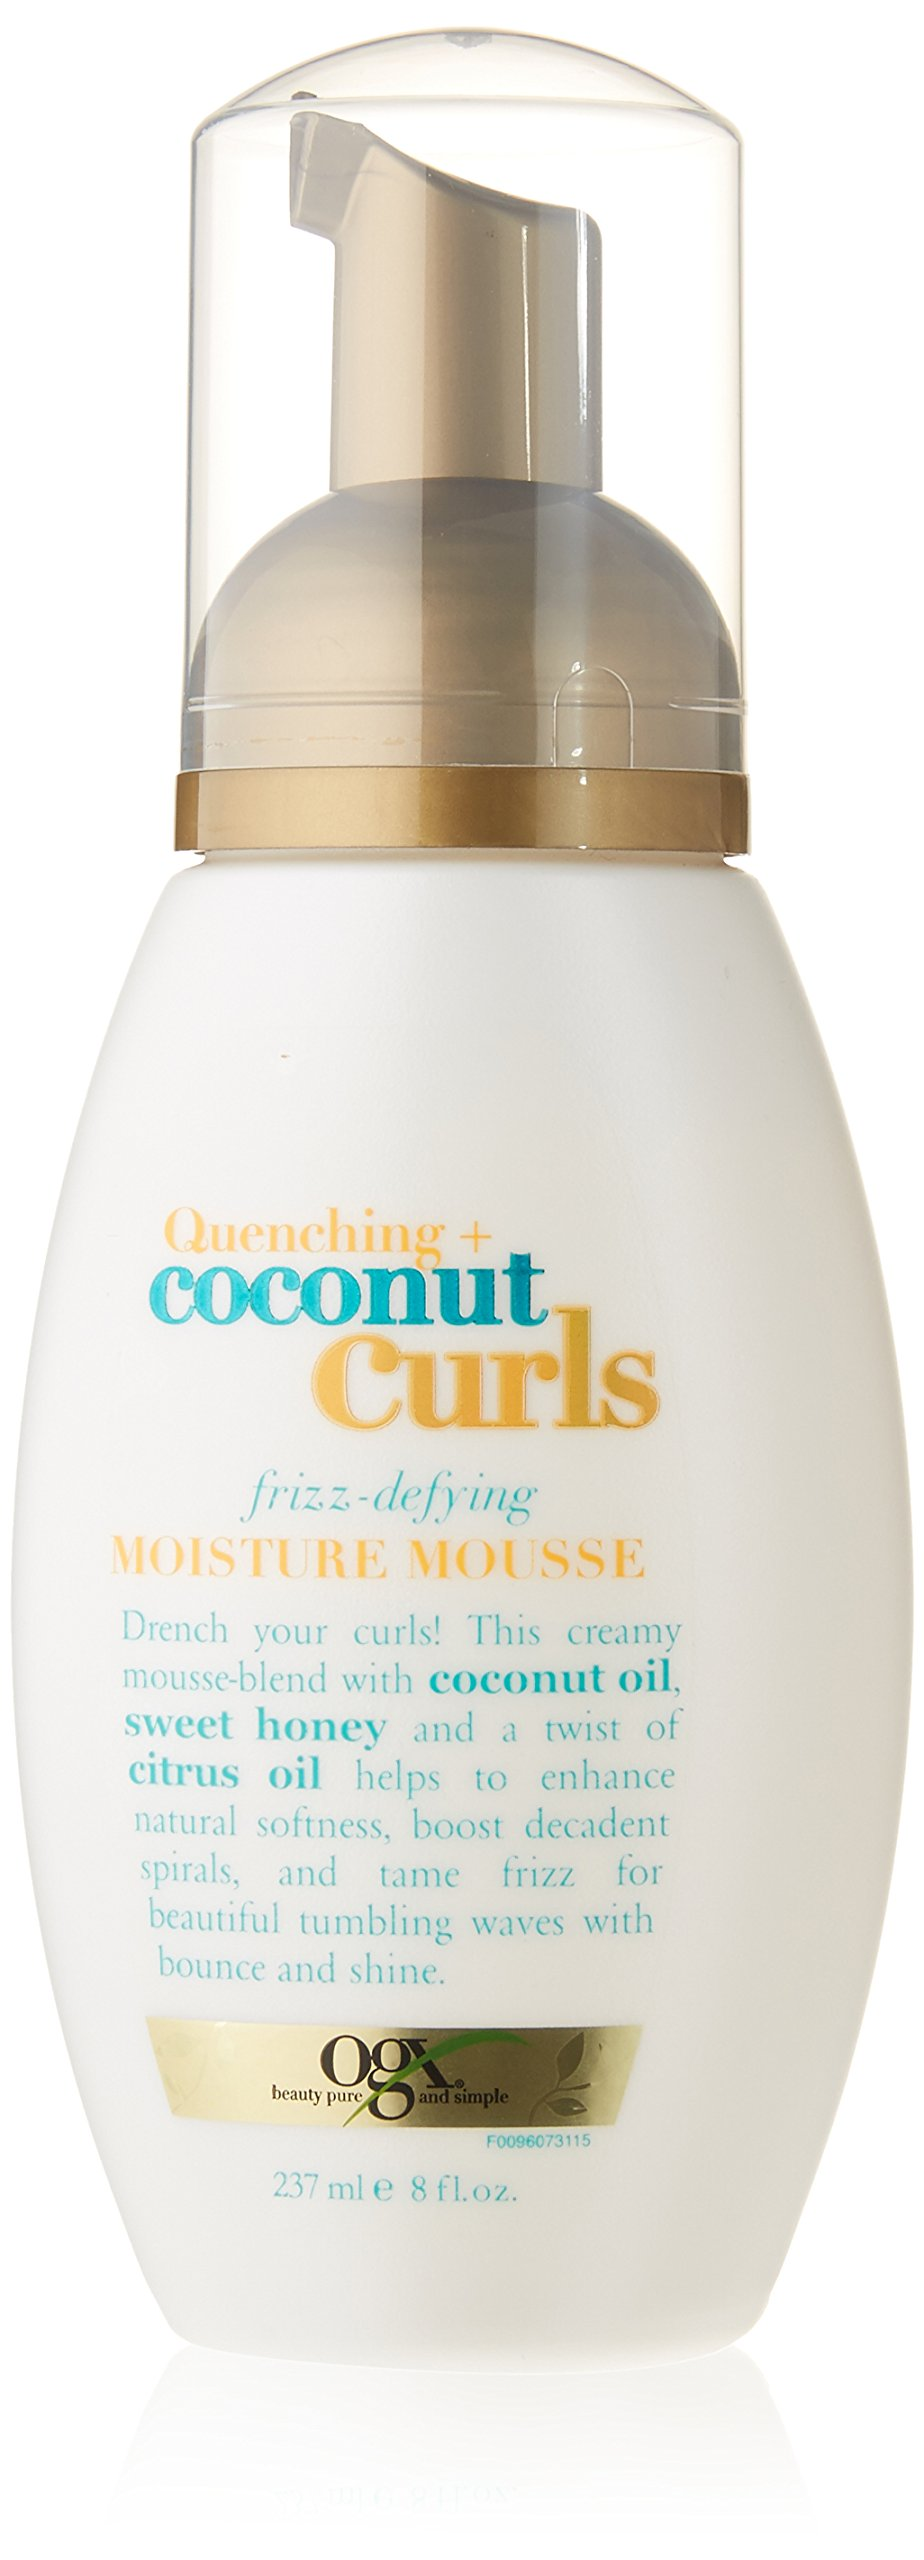 OGX Quenching Plus Coconut Curls Mousse, 8 Fluid Ounce by OGX